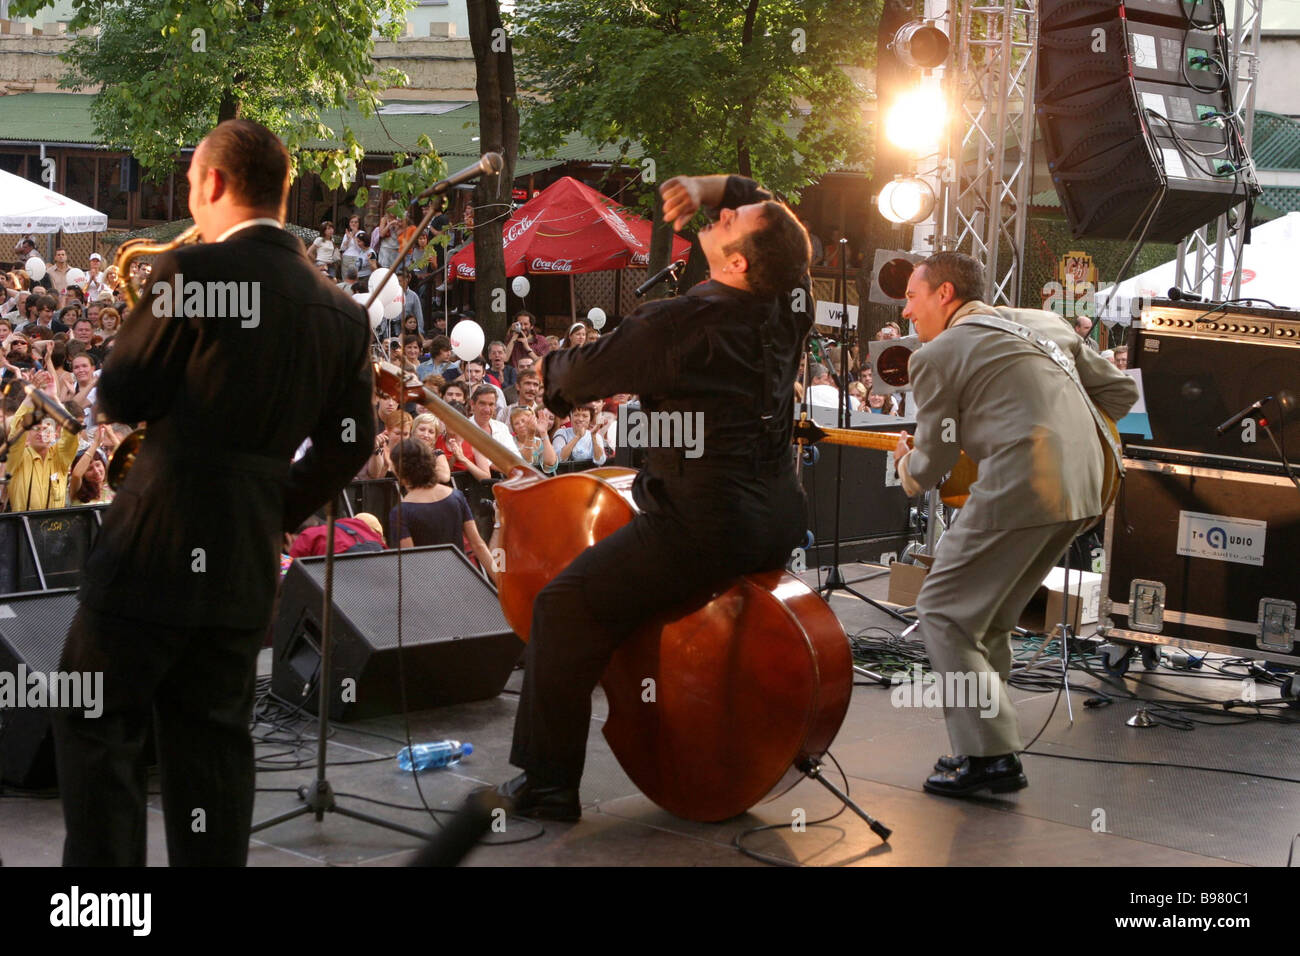 The Dance festival offered live music of many styles nations and centuries Several thousand enjoyed it all day long - Stock Image